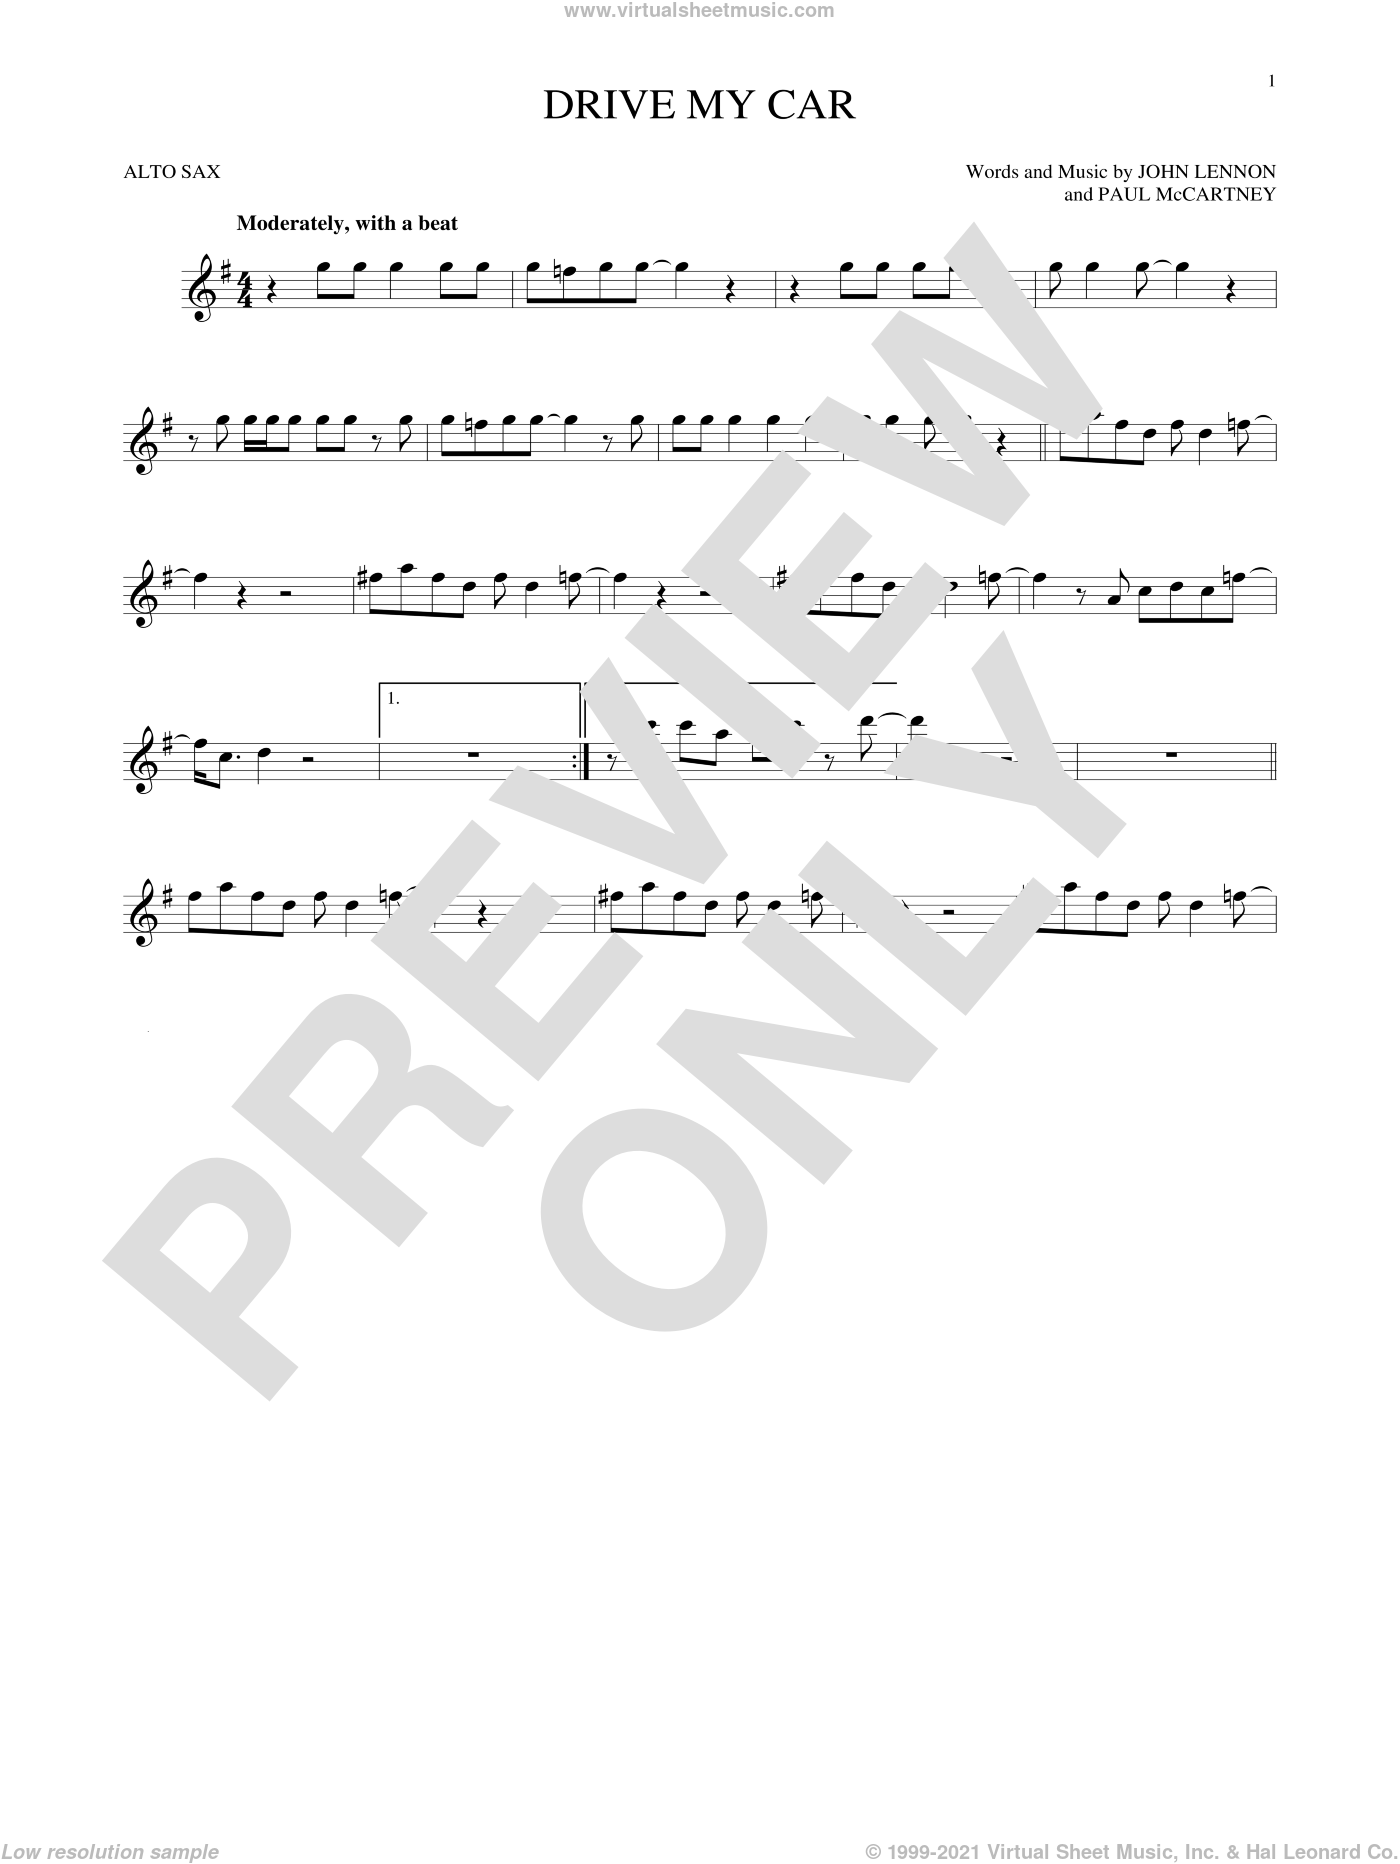 Drive My Car sheet music for alto saxophone solo by The Beatles, John Lennon and Paul McCartney, intermediate skill level